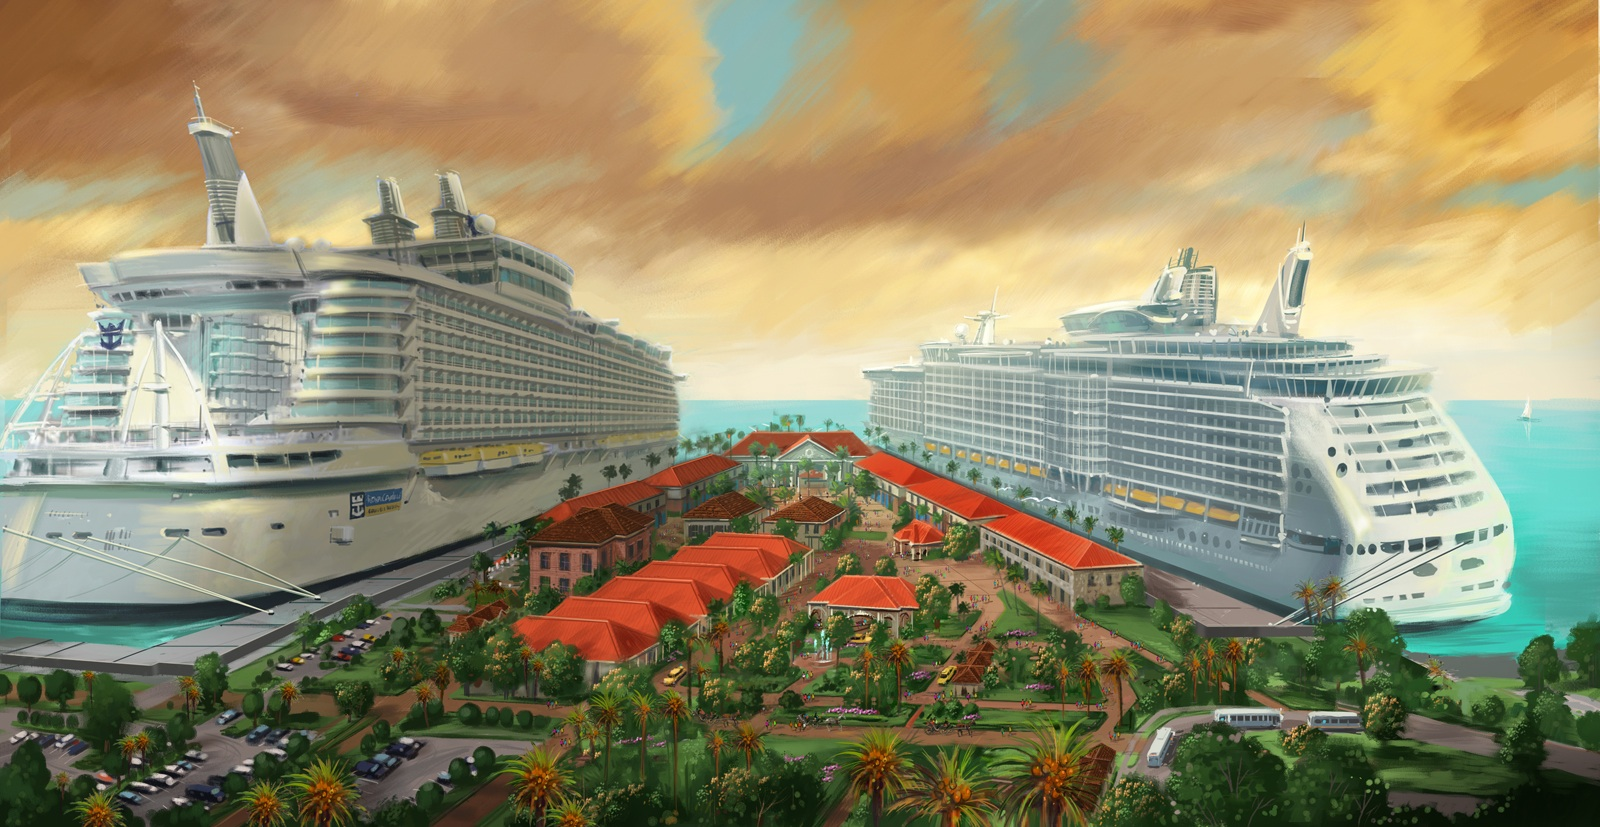 Jamaica S Historic Falmouth Cruise Port Debuts Next Month